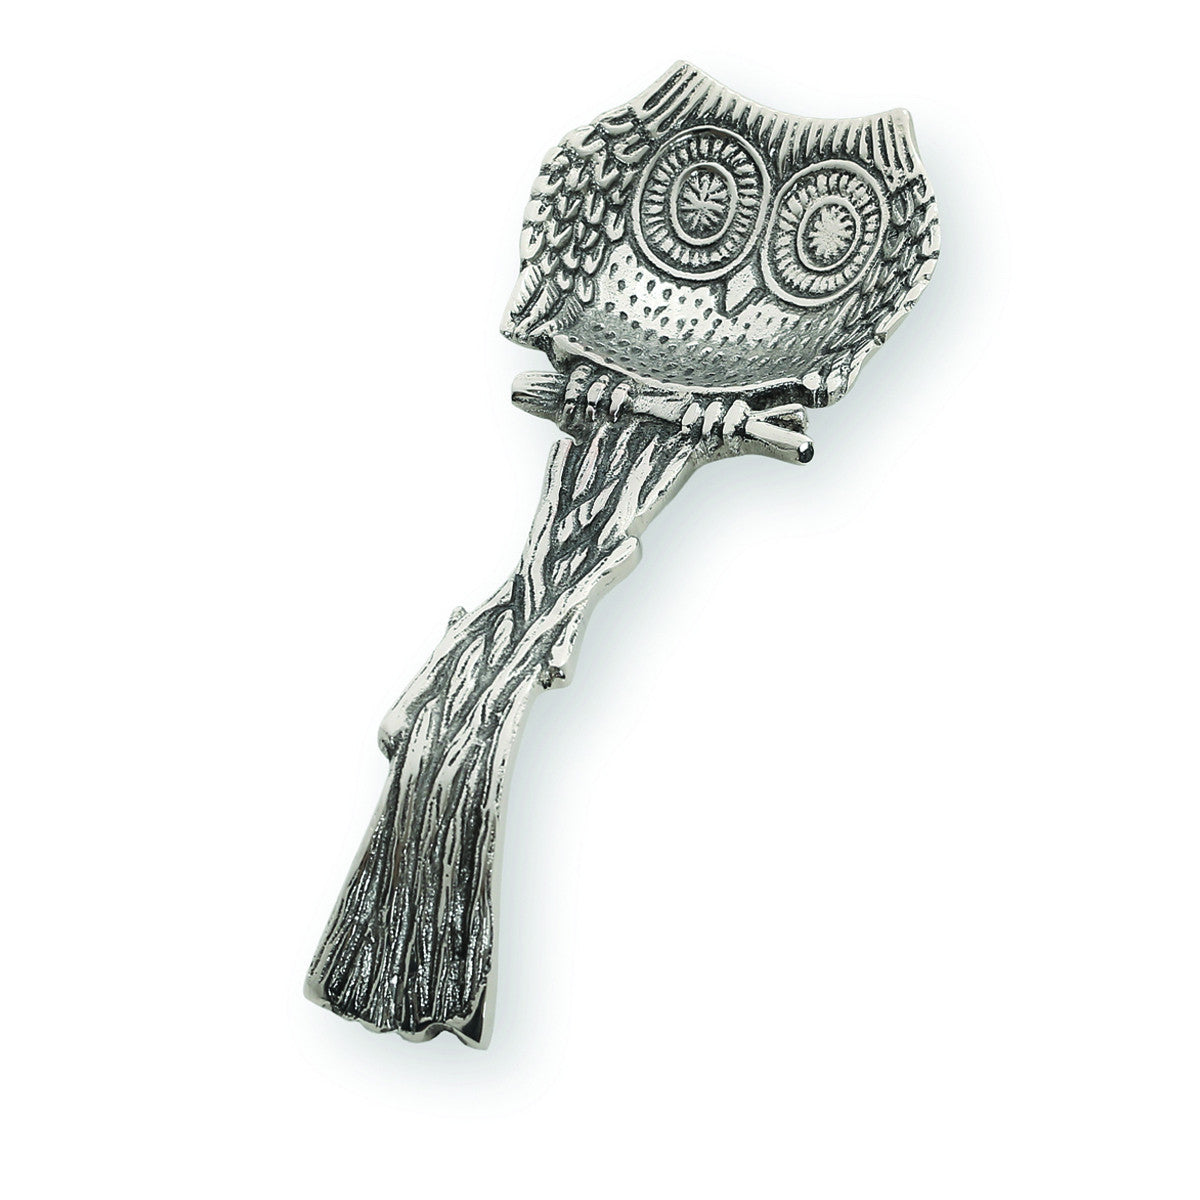 Lakeside Owl Spoon Rest